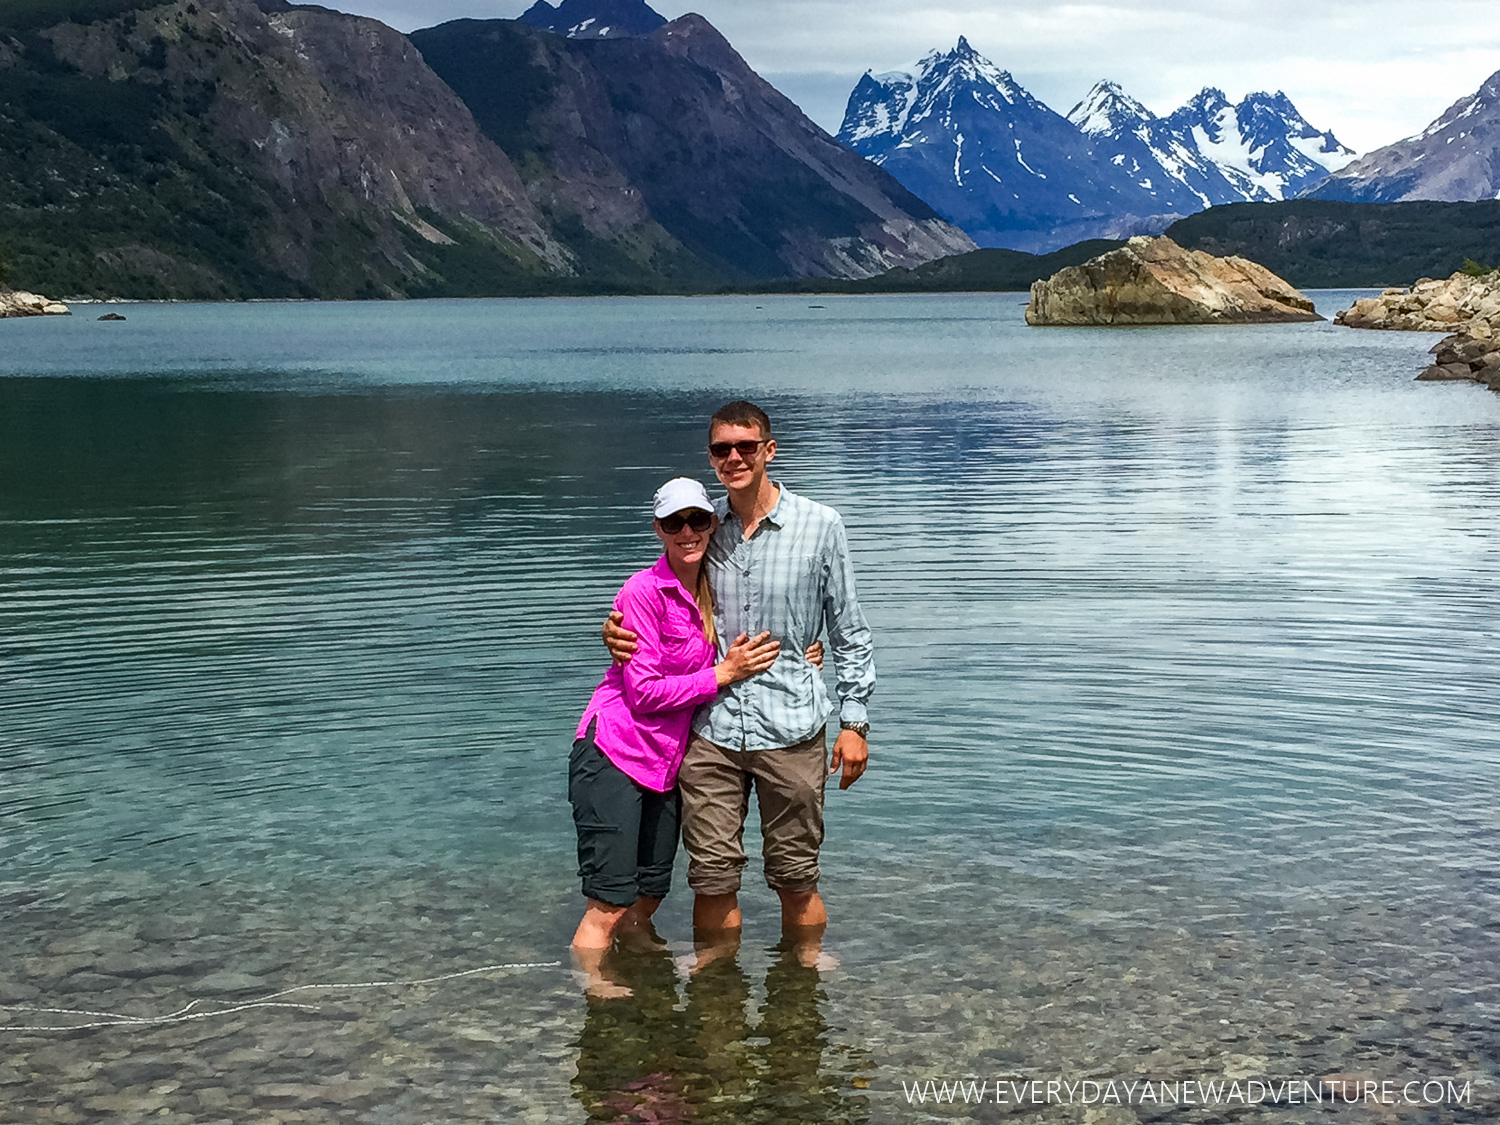 Standing in the very cold Frias Lake - this was as far as we were going!